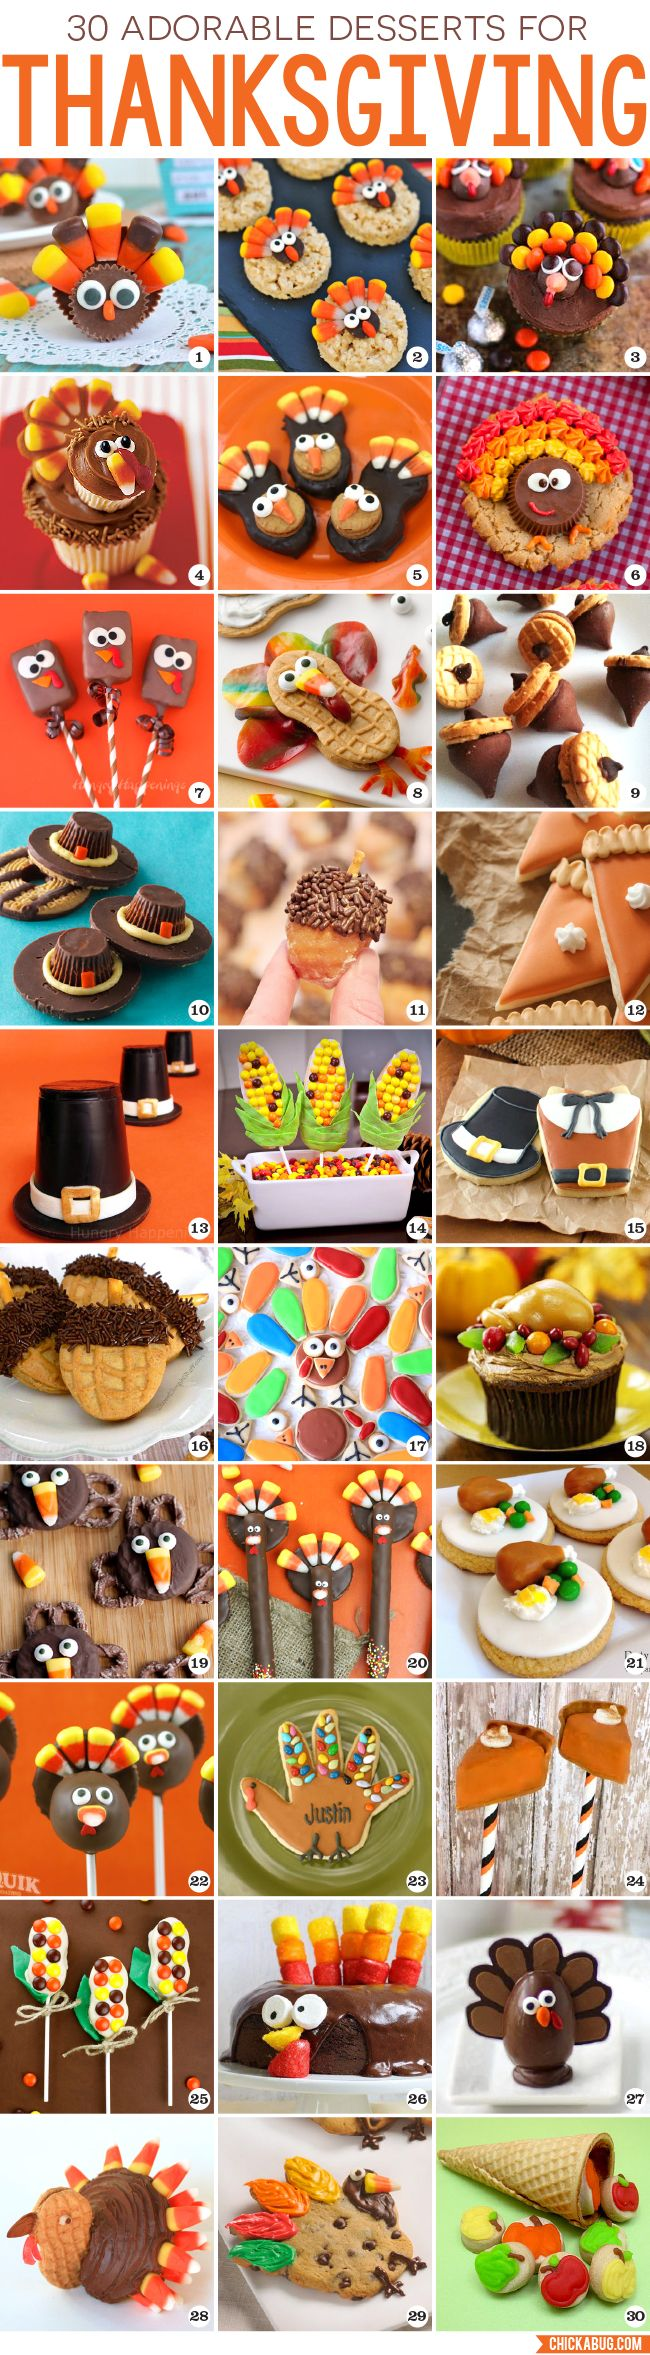 30 adorable Thanksgiving desserts #thanksgivingfood